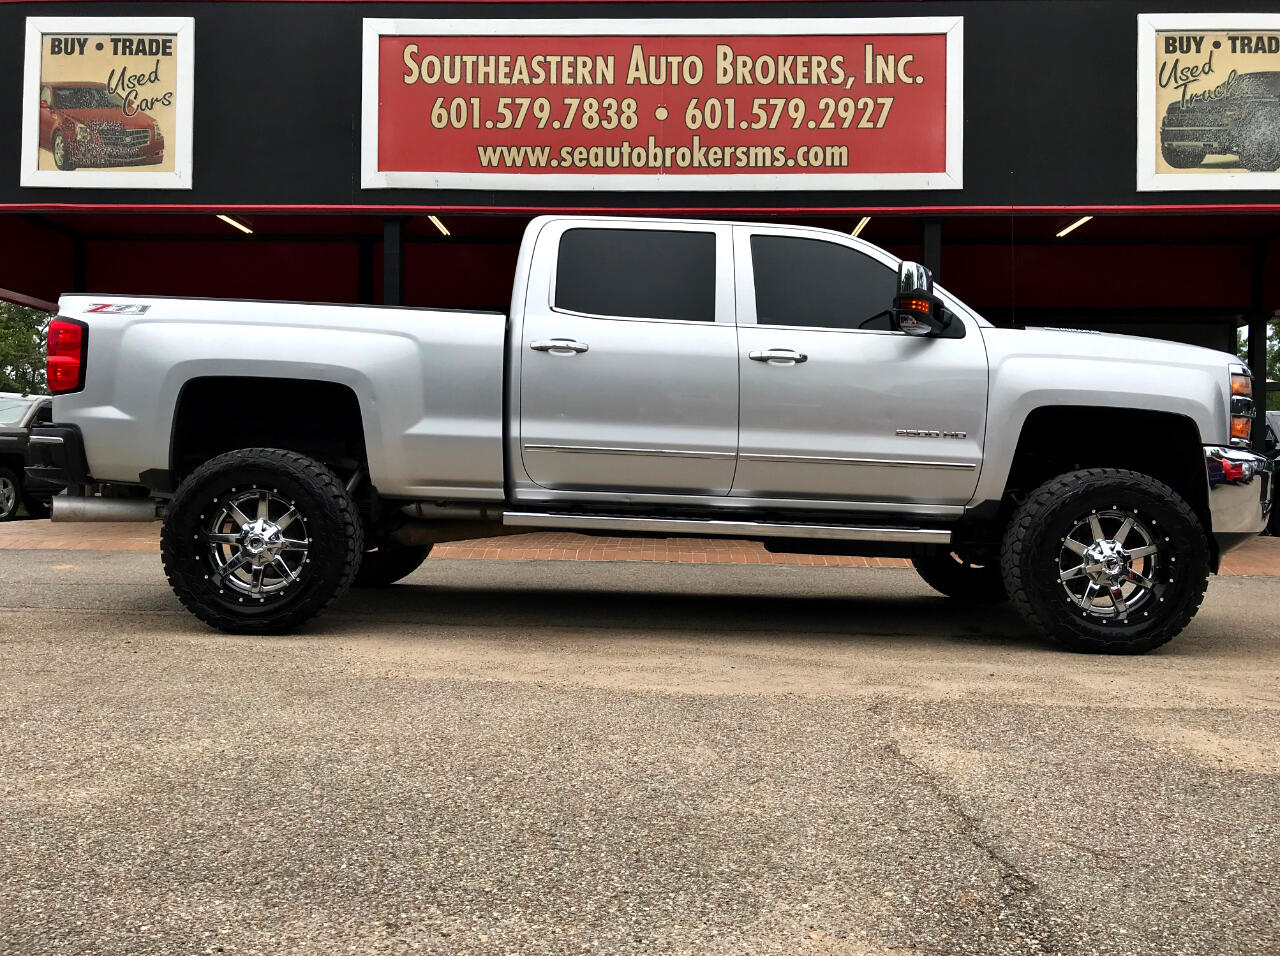 2015 Chevrolet Silverado 2500HD LTZ CREW CAB SHORT BED 4WD CUSTOM LIFTED